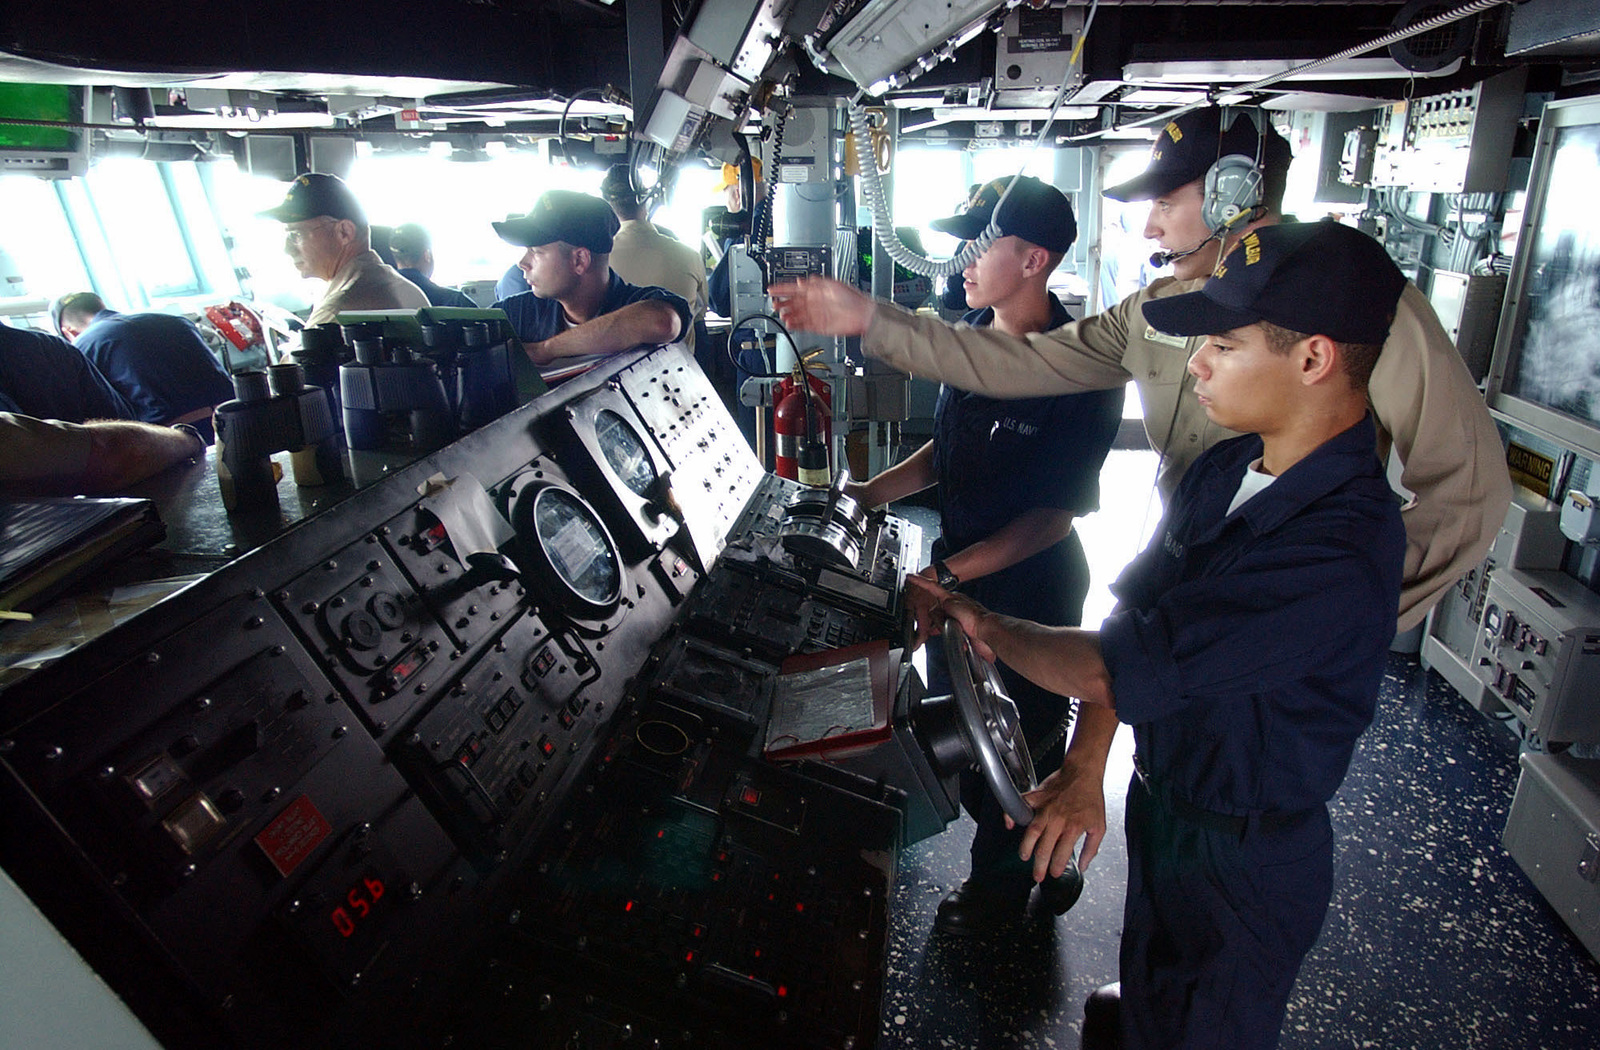 US Navy (USN) SEAMAN (SN) Edwin Laureano stands helmsman watch and executes rudder orders during sea and anchor detail on board the Yokosuka based USN Arleigh Burke Class Guided Missile Destroyer USS CURTIS WILBUR (DDG 54). The WILBUR, currently deployed in the 7th Fleet area of responsibility (AOR), undergoing testing and qualification by Afloat Training Group (ATG) and Commander, Destroyer Squadron 15, during the ships Mid-Cycle assessment